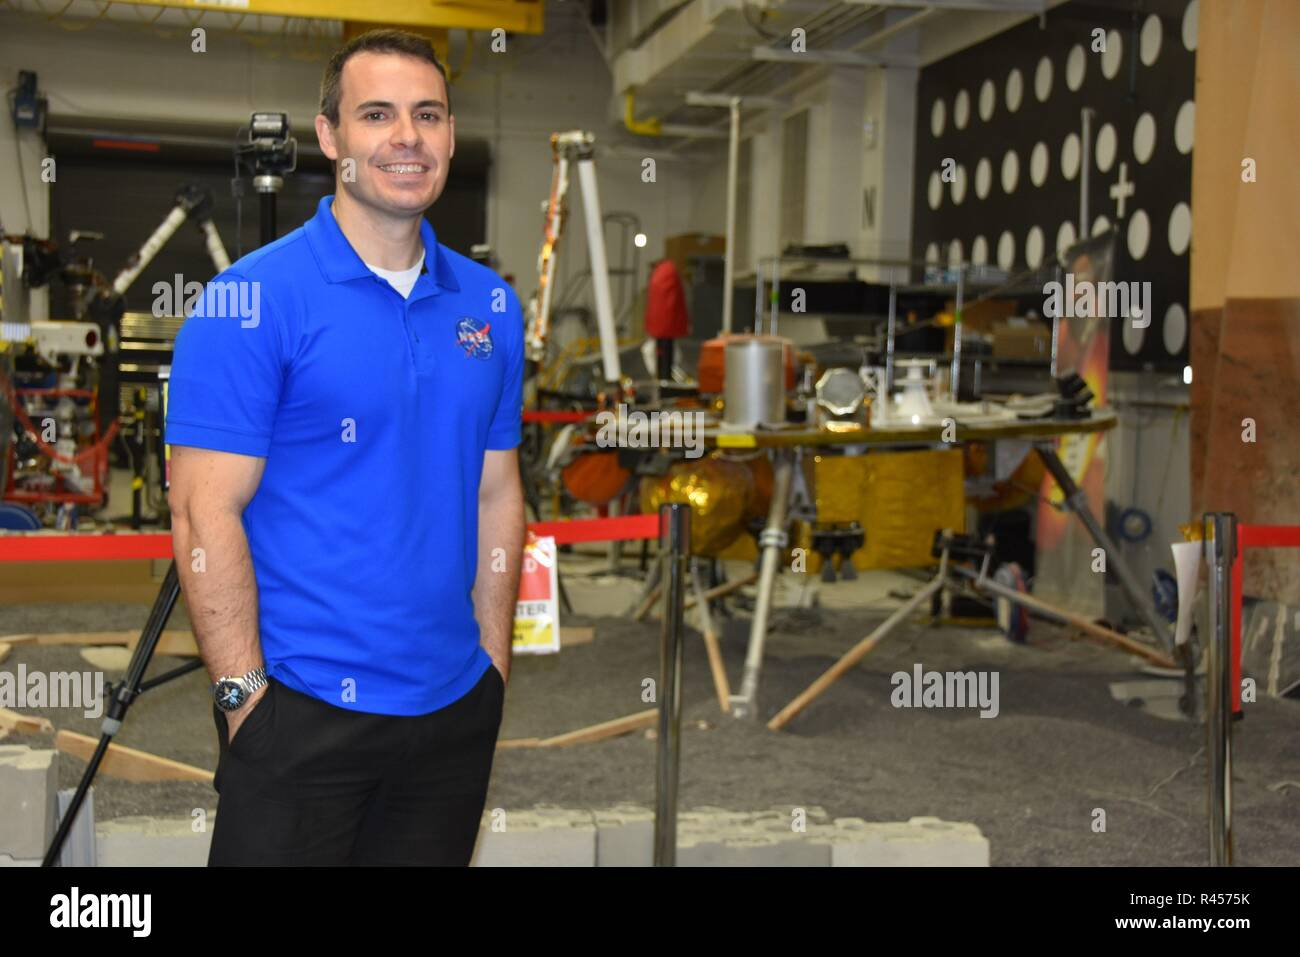 Pasadena, United States. 25th Nov, 2018. Pasadena, USA, 25 November 2018. InSight Deputy Mission Manager at NASA Jet Propulsion Laboratory, Fernando Abilleira, pose for the photographers in a laboratory in Pasadena, United States, 25 November 2018. InSight Mission will drill deeper into Mars and will install a thermal sensor to decipher his 'deep interior'. Credit: Iván Mejía Credit: EFE News Agency/Alamy Live News/EFE/Alamy Live News - Stock Image